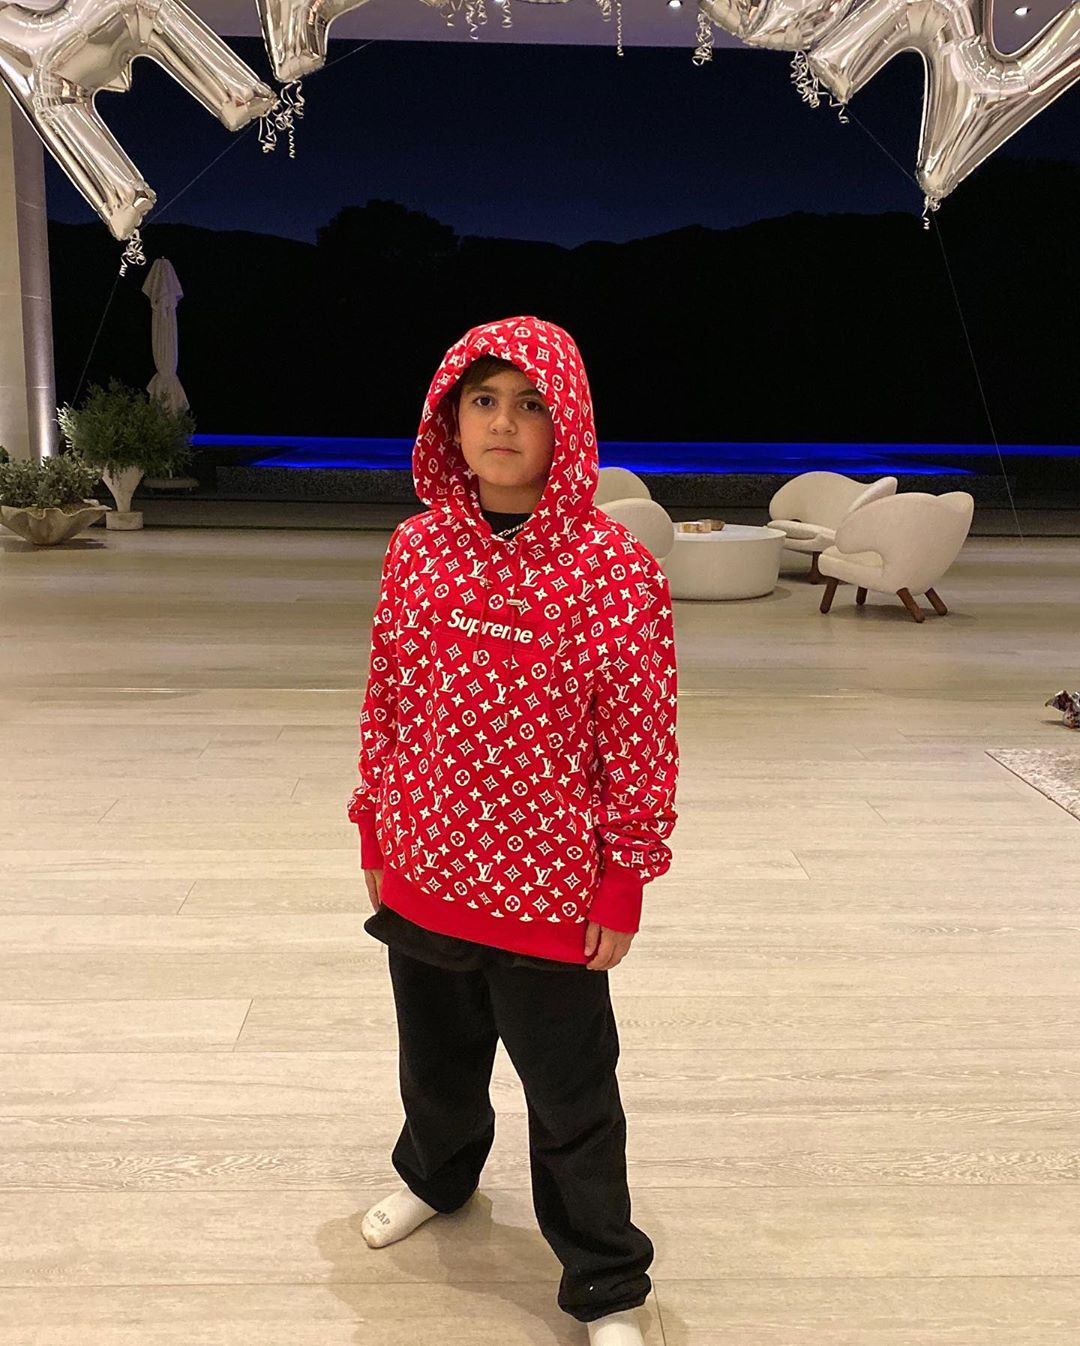 Mason Disick Stands in a Red Hoodie and Black Sweats